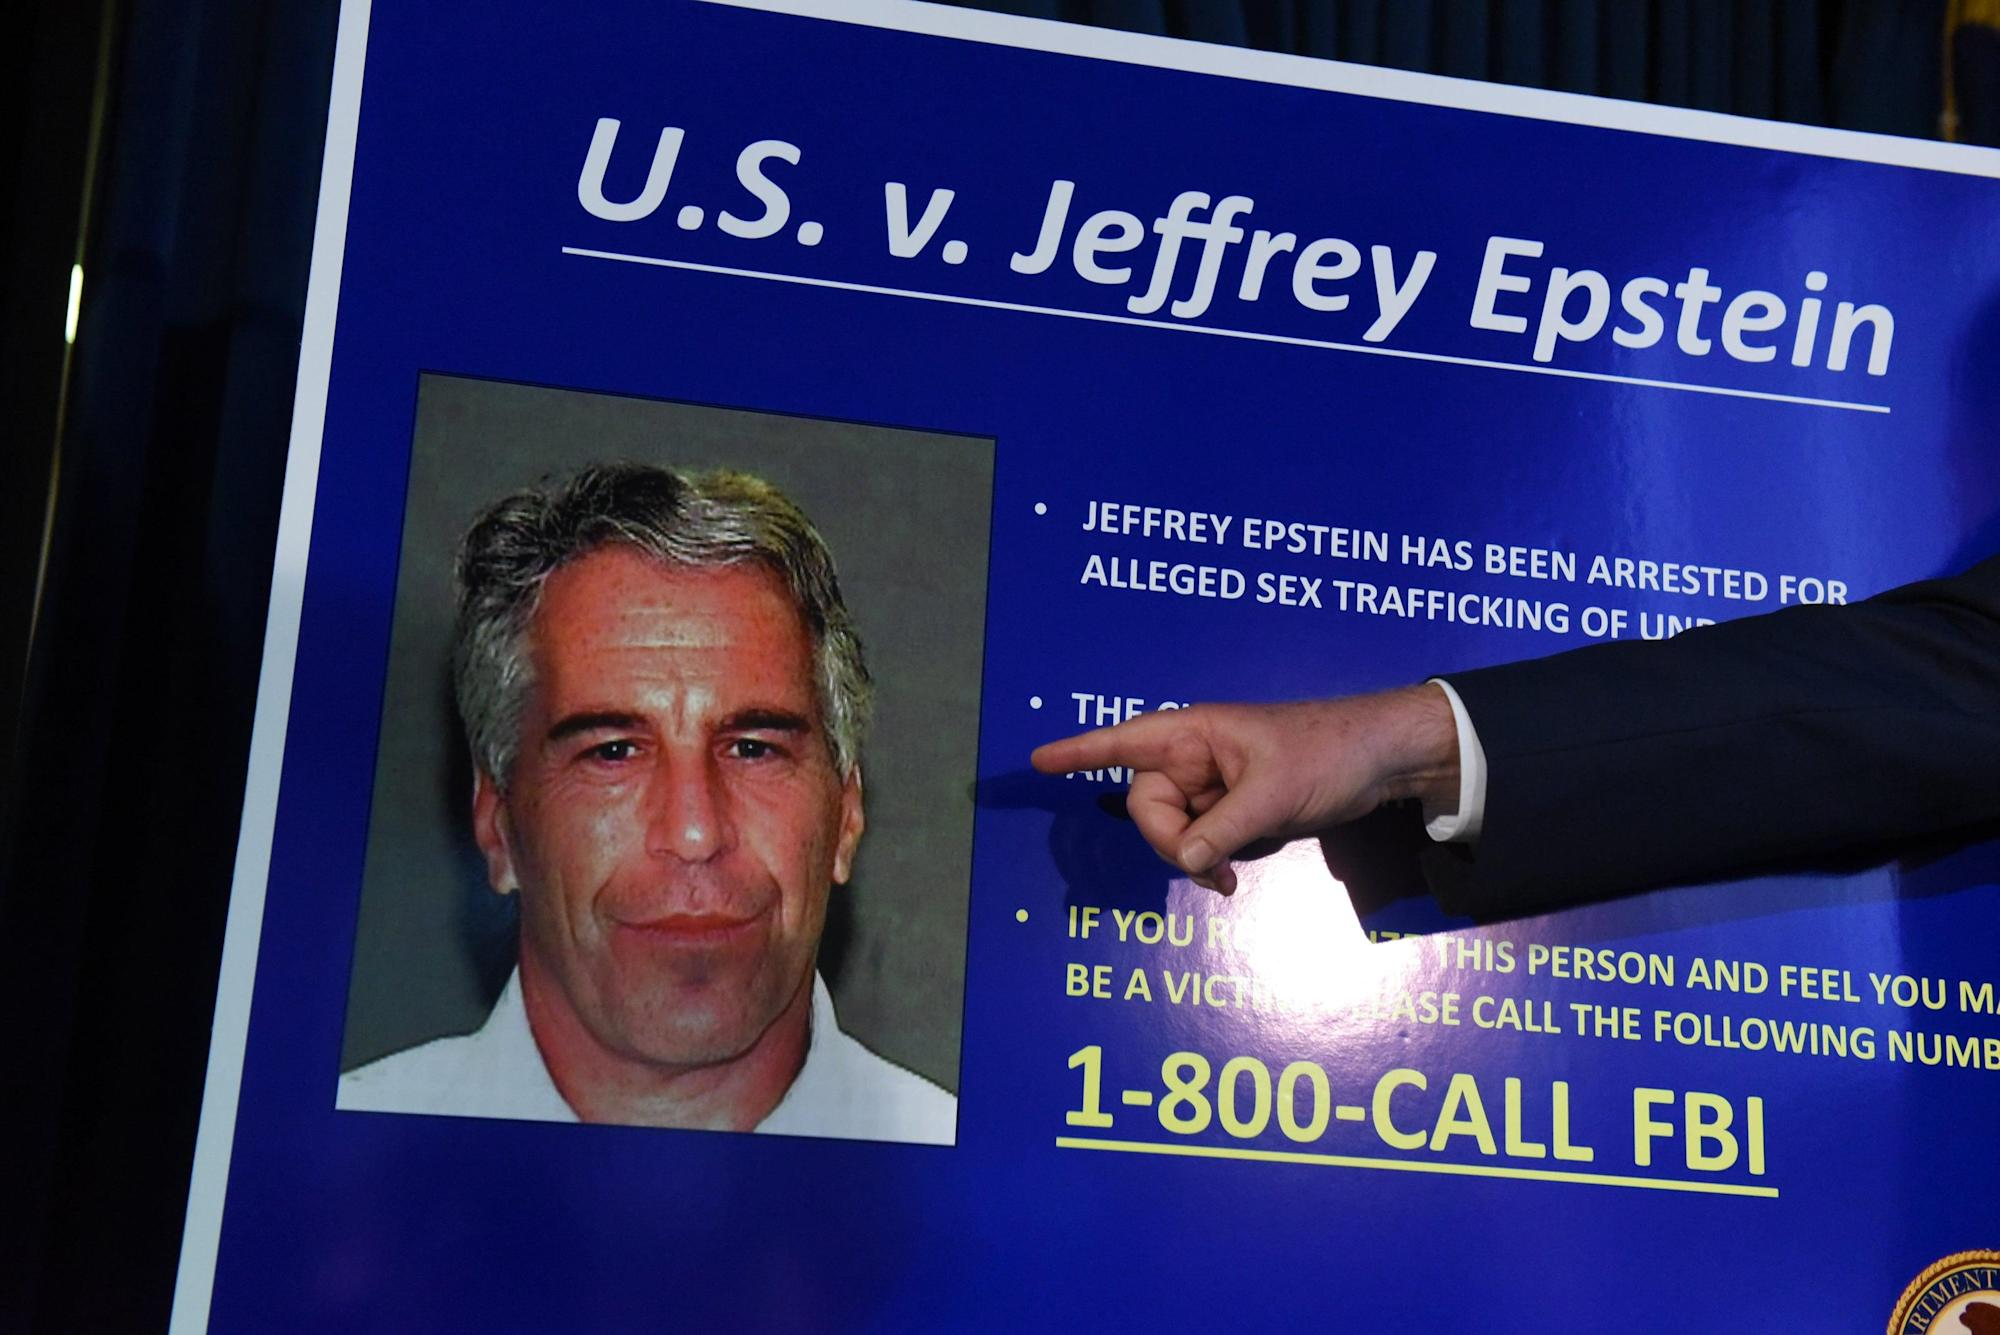 No action against prosecutors who made Epstein deal, Justice Department says